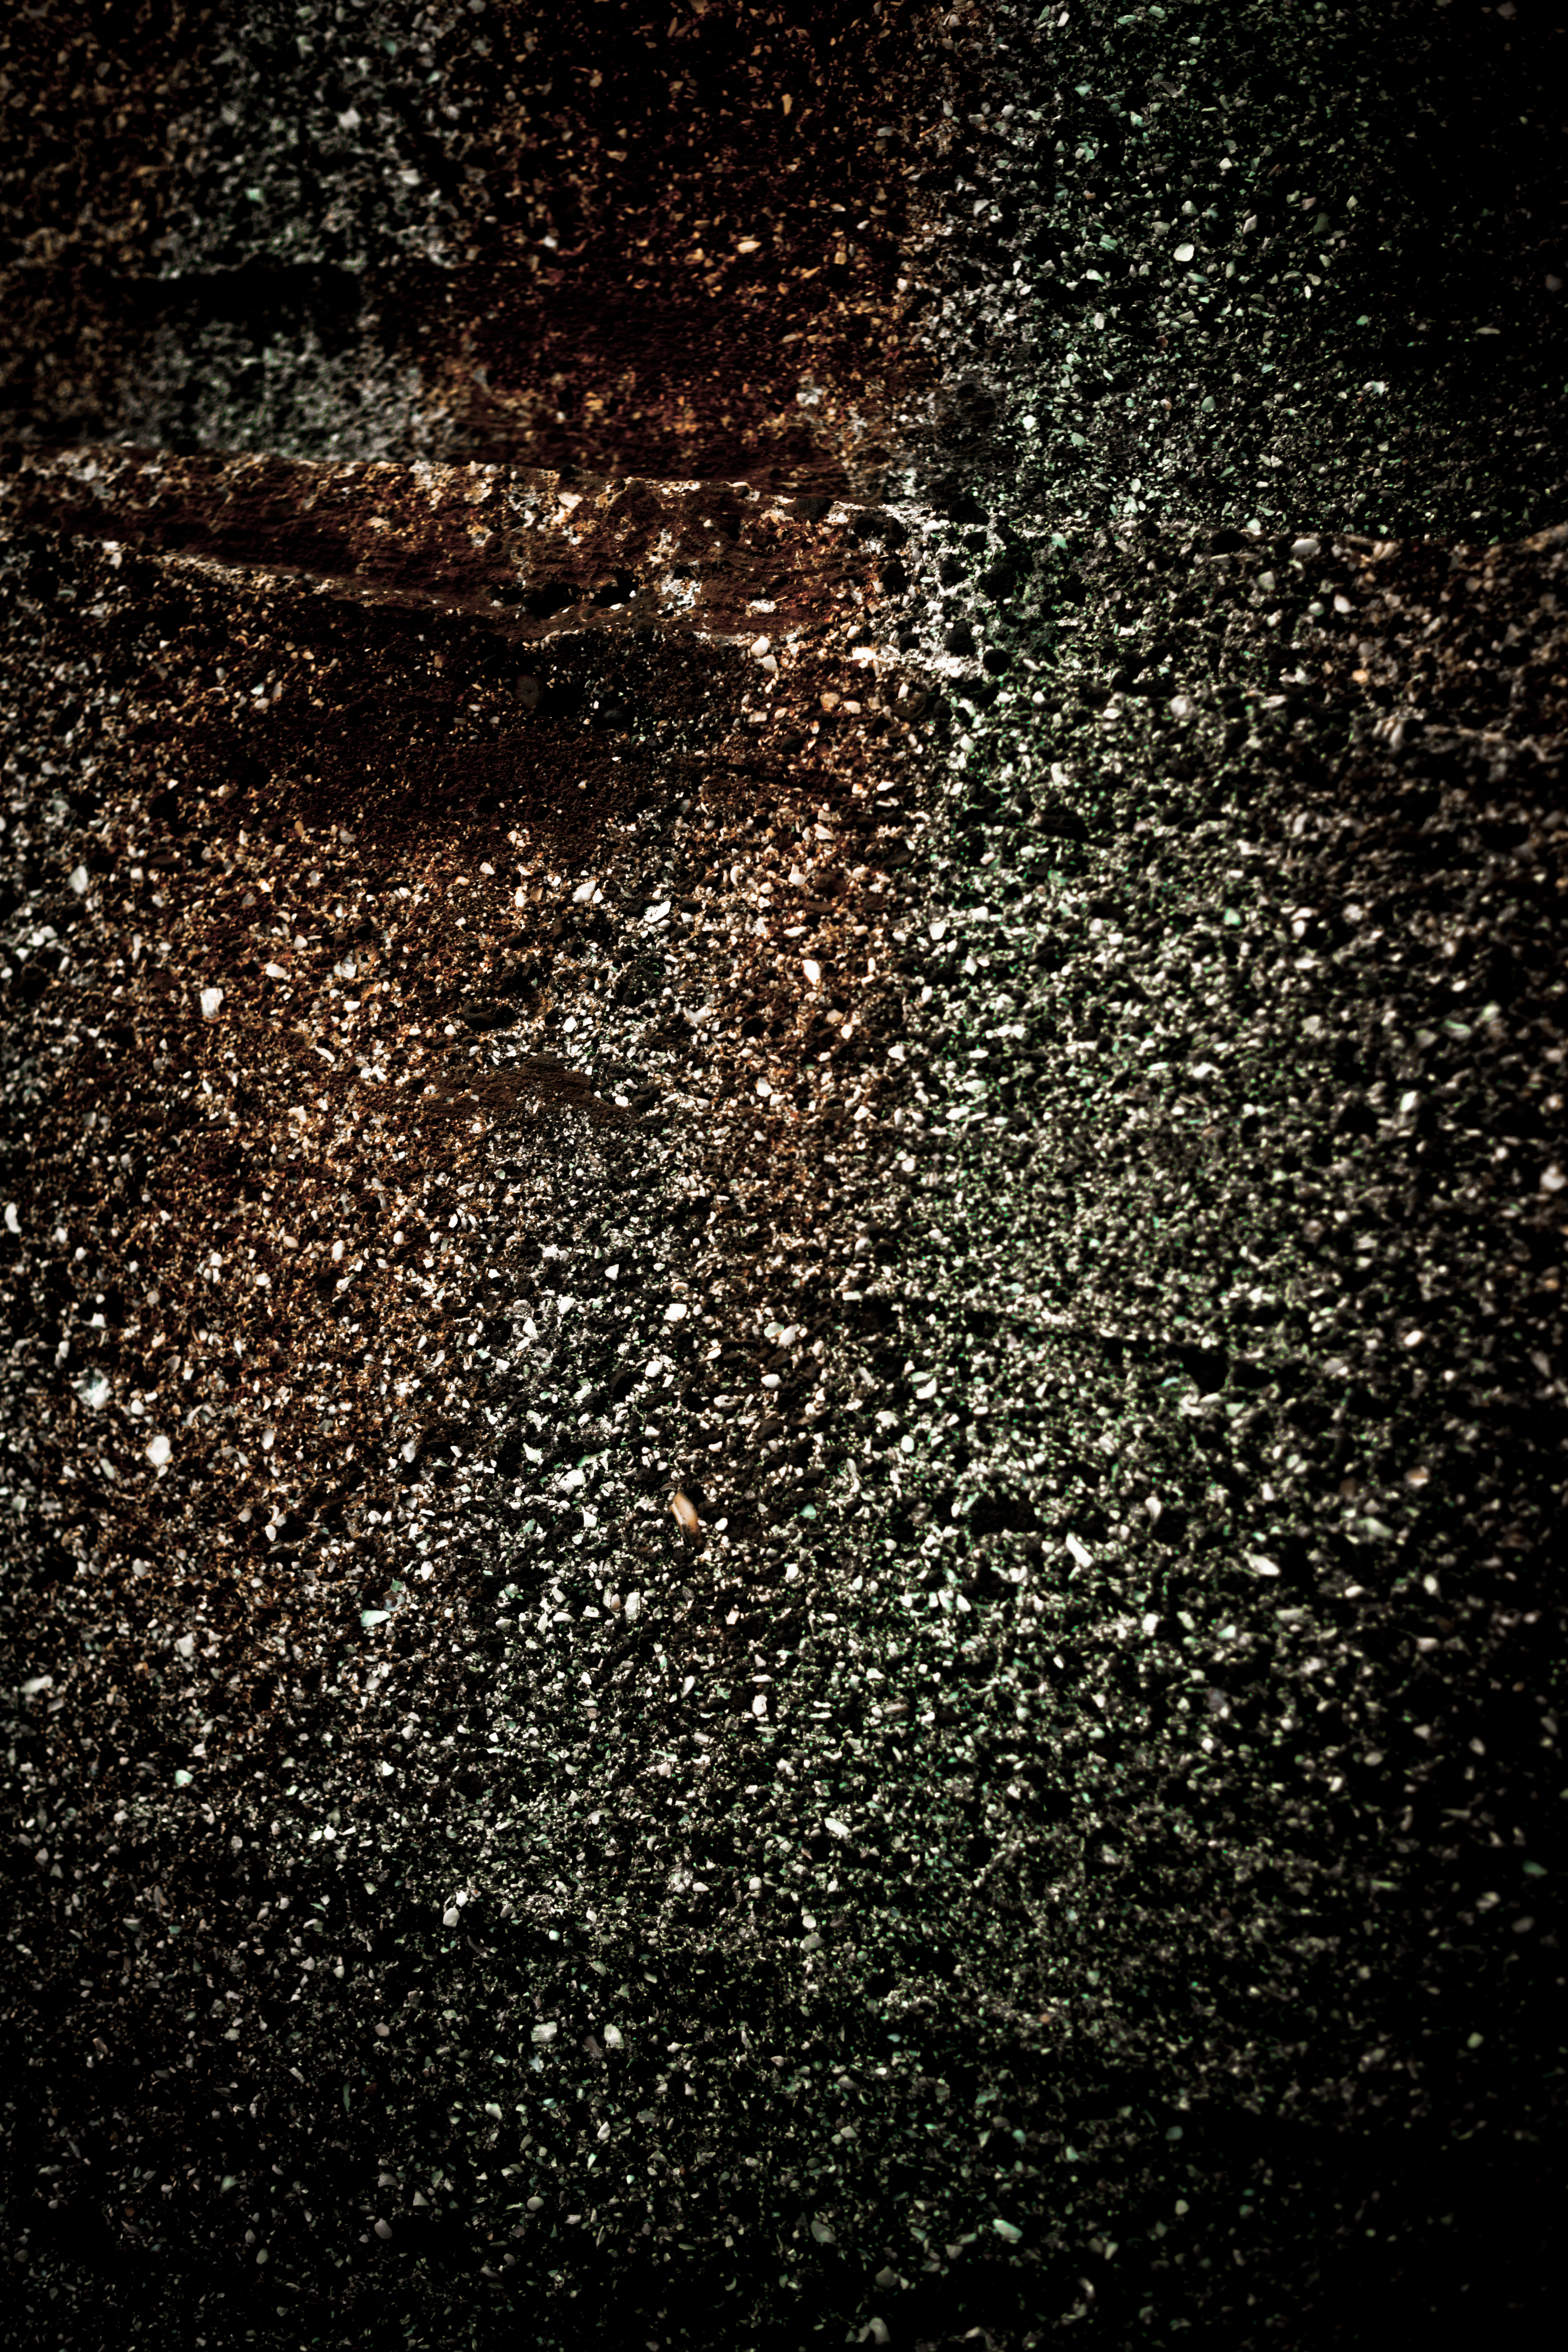 Rust stained concrete texture, Concrete, Dark, Grunge, Grungy, HQ Photo